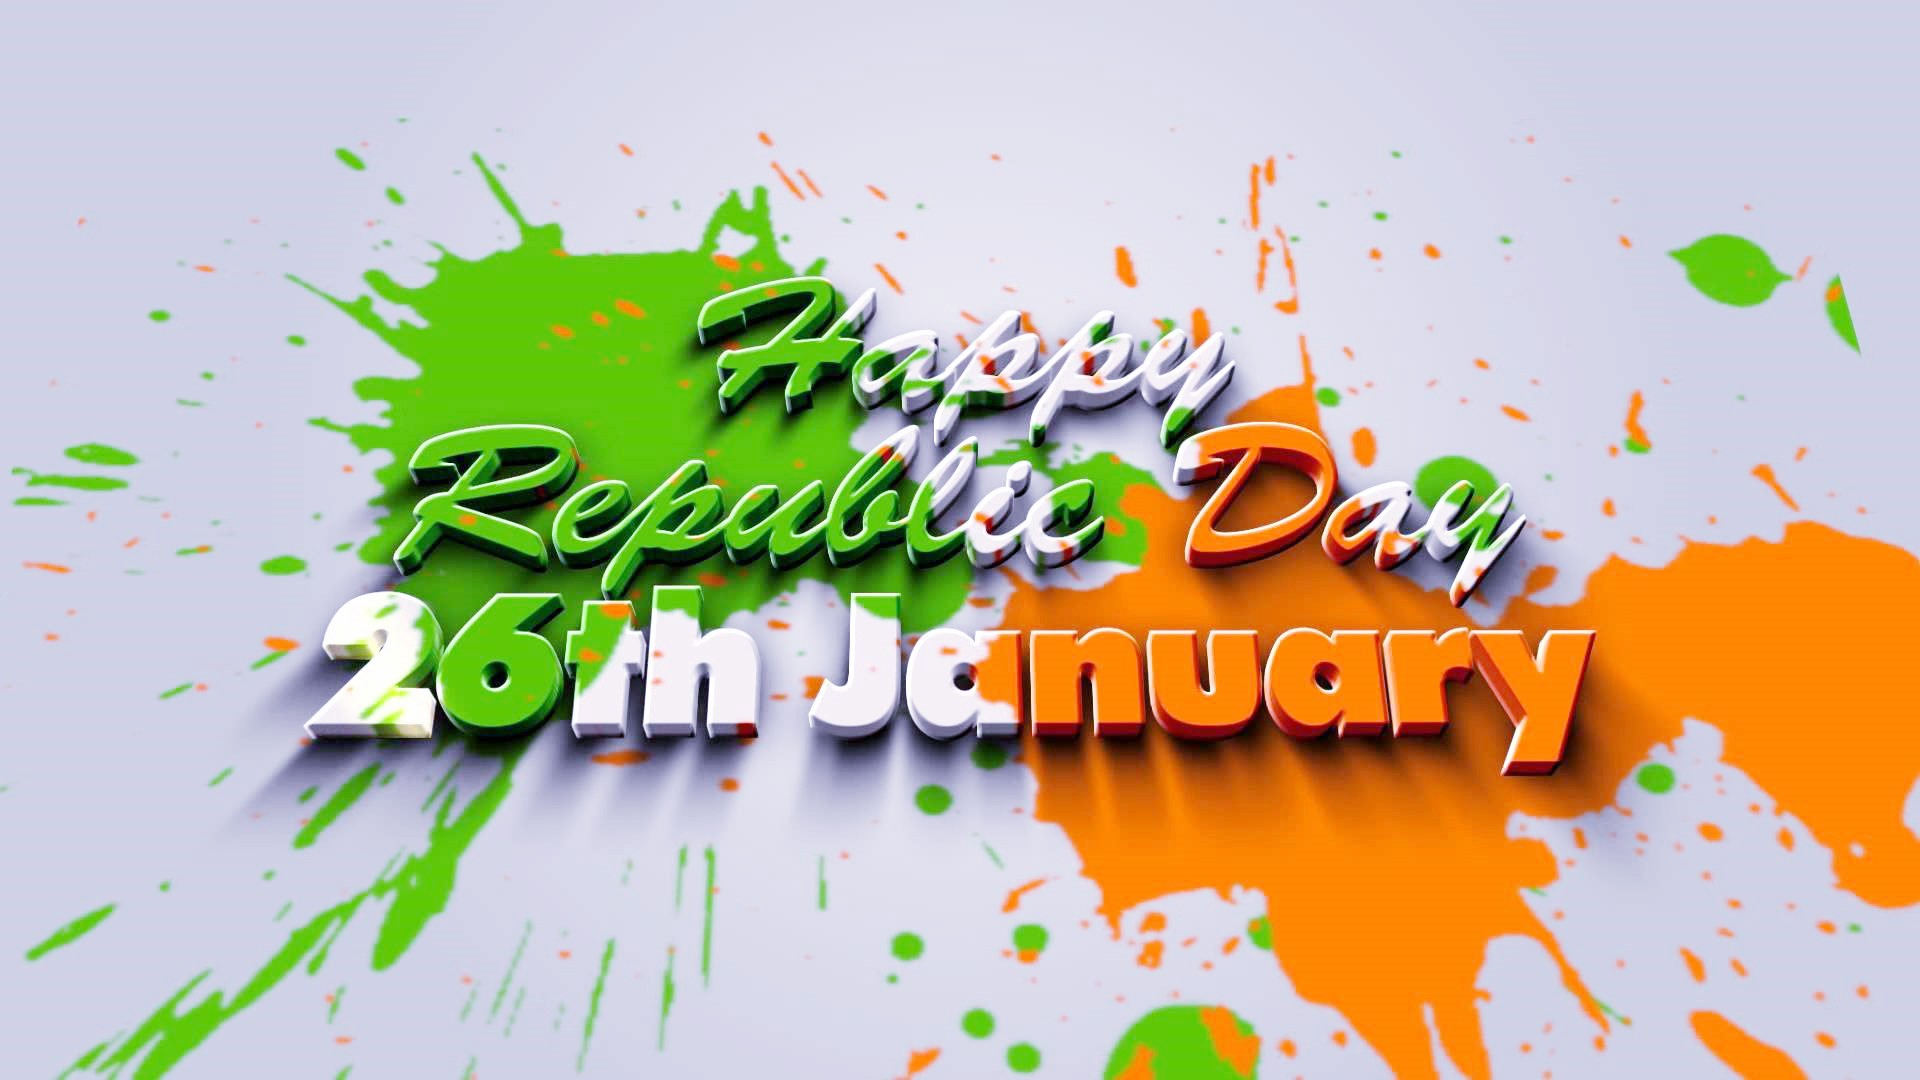 Happy Republic Day Pics, Images